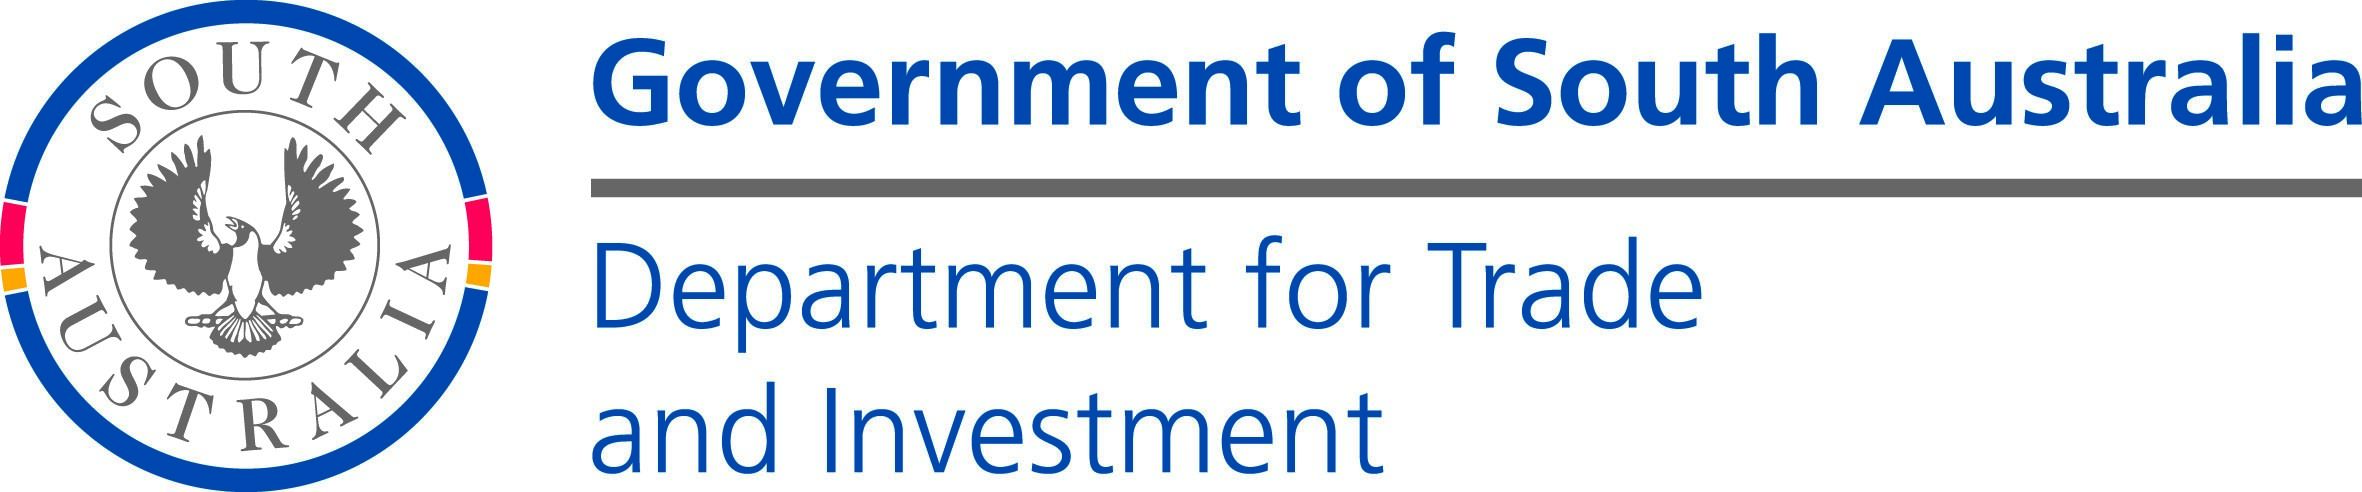 department-for-trade-and-investment